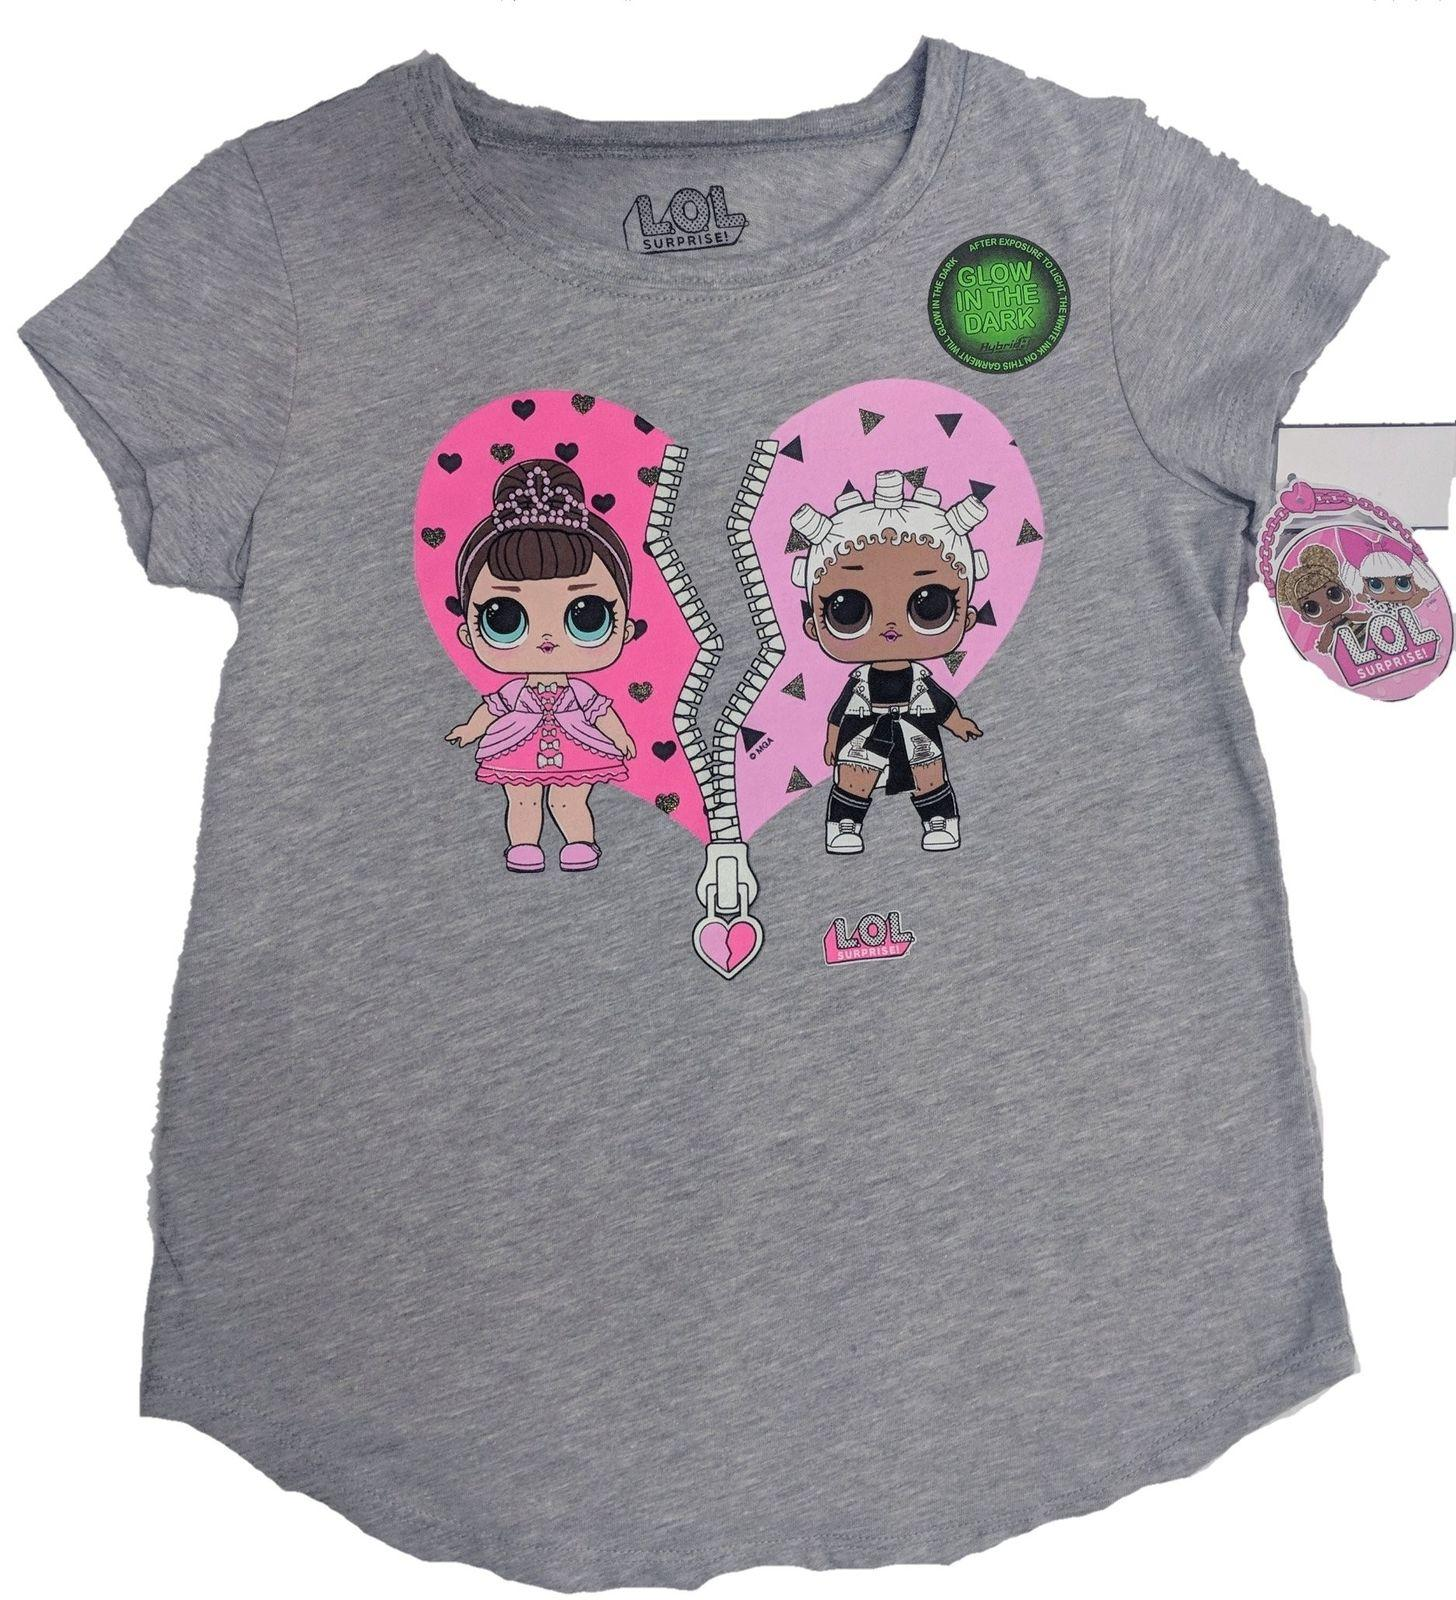 9ae46521d8d7 LOL Glow In The Dark Surprise Girls T Shirt Charcoal He... Men Women Unisex  Fashion Tshirt Silly T Shirt Make Your Own Tee Shirt Design From ...